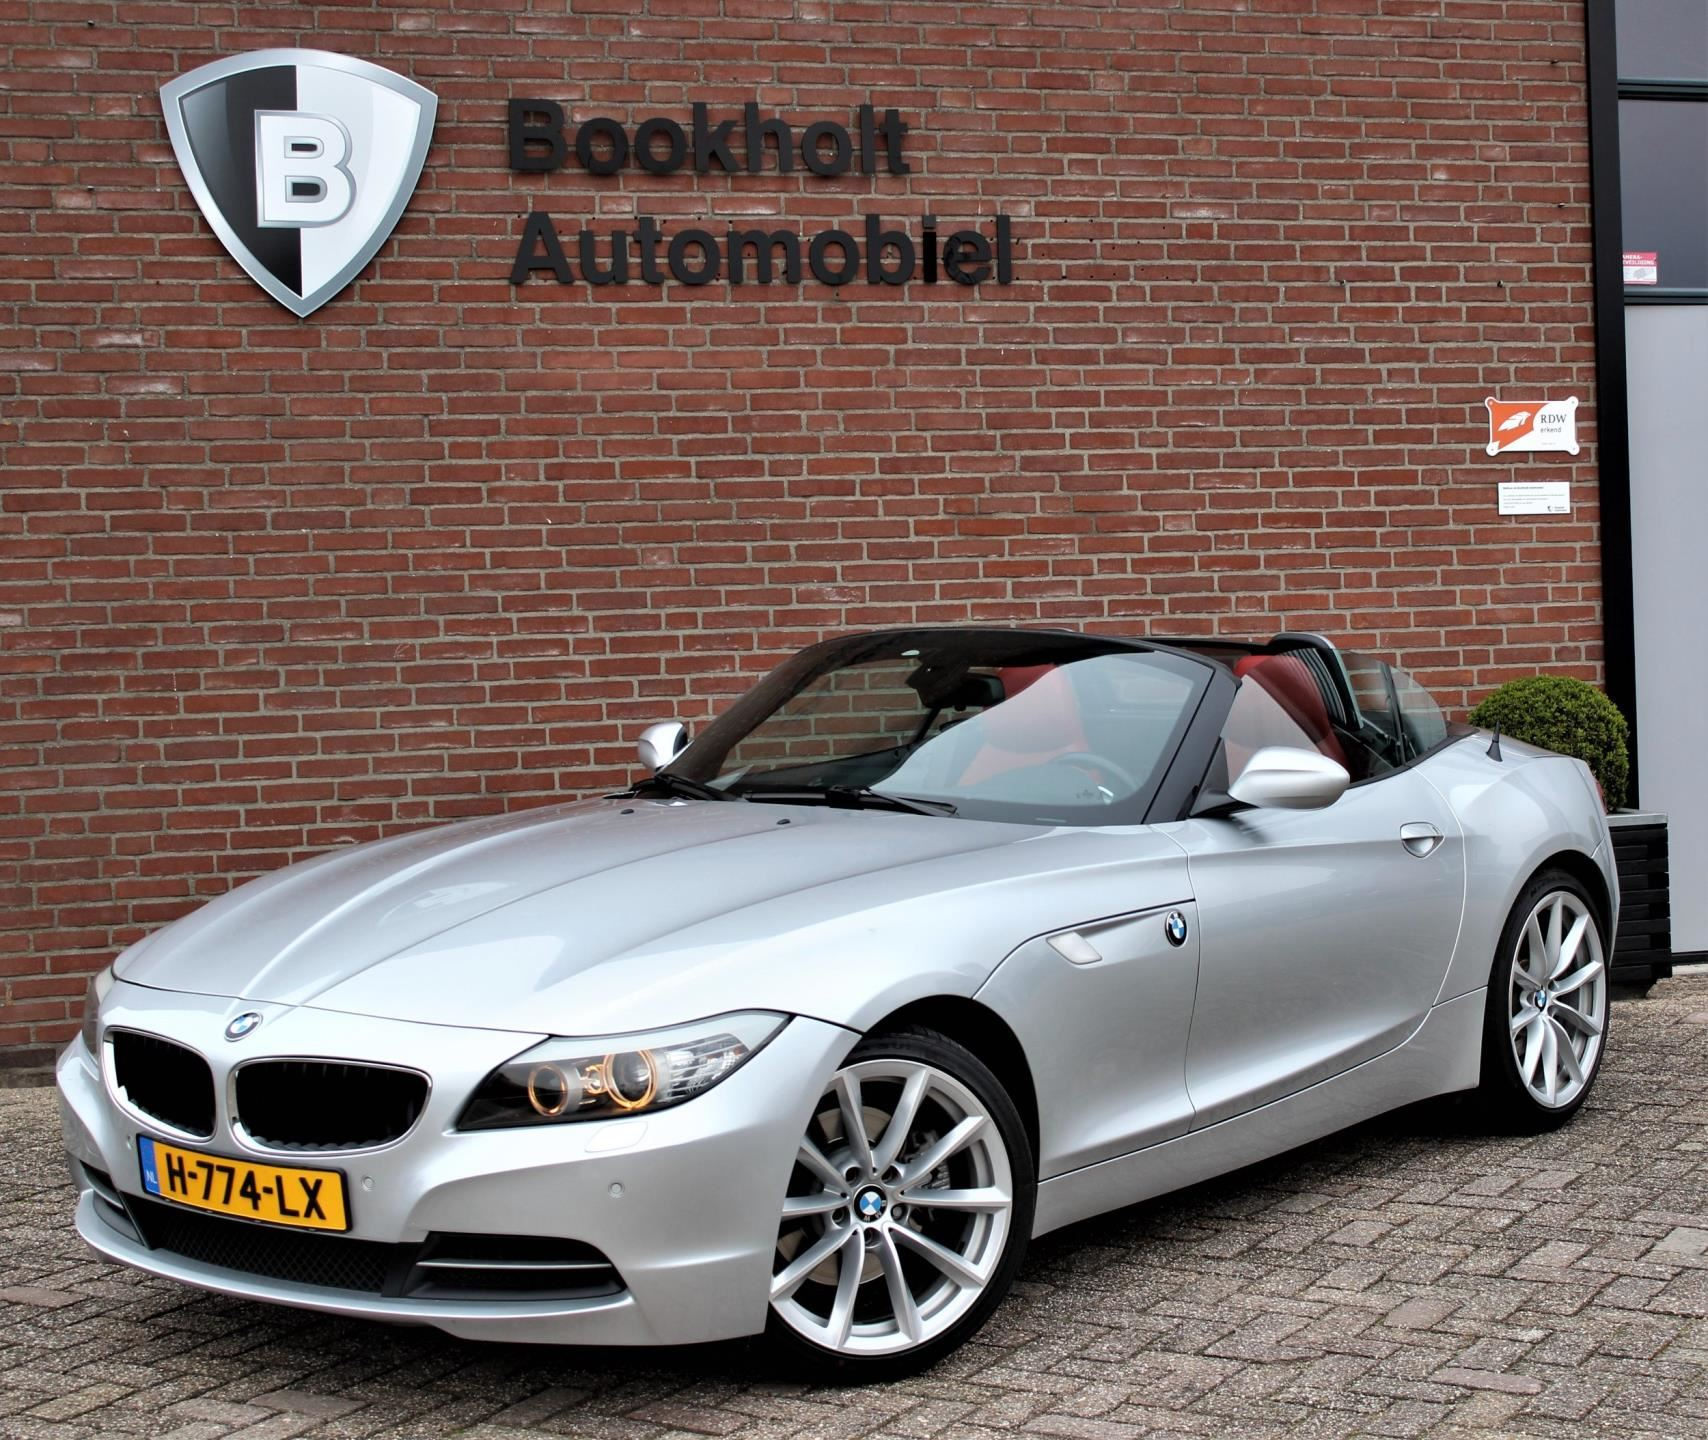 BMW Z4 Roadster occasion - Bookholt Automobiel